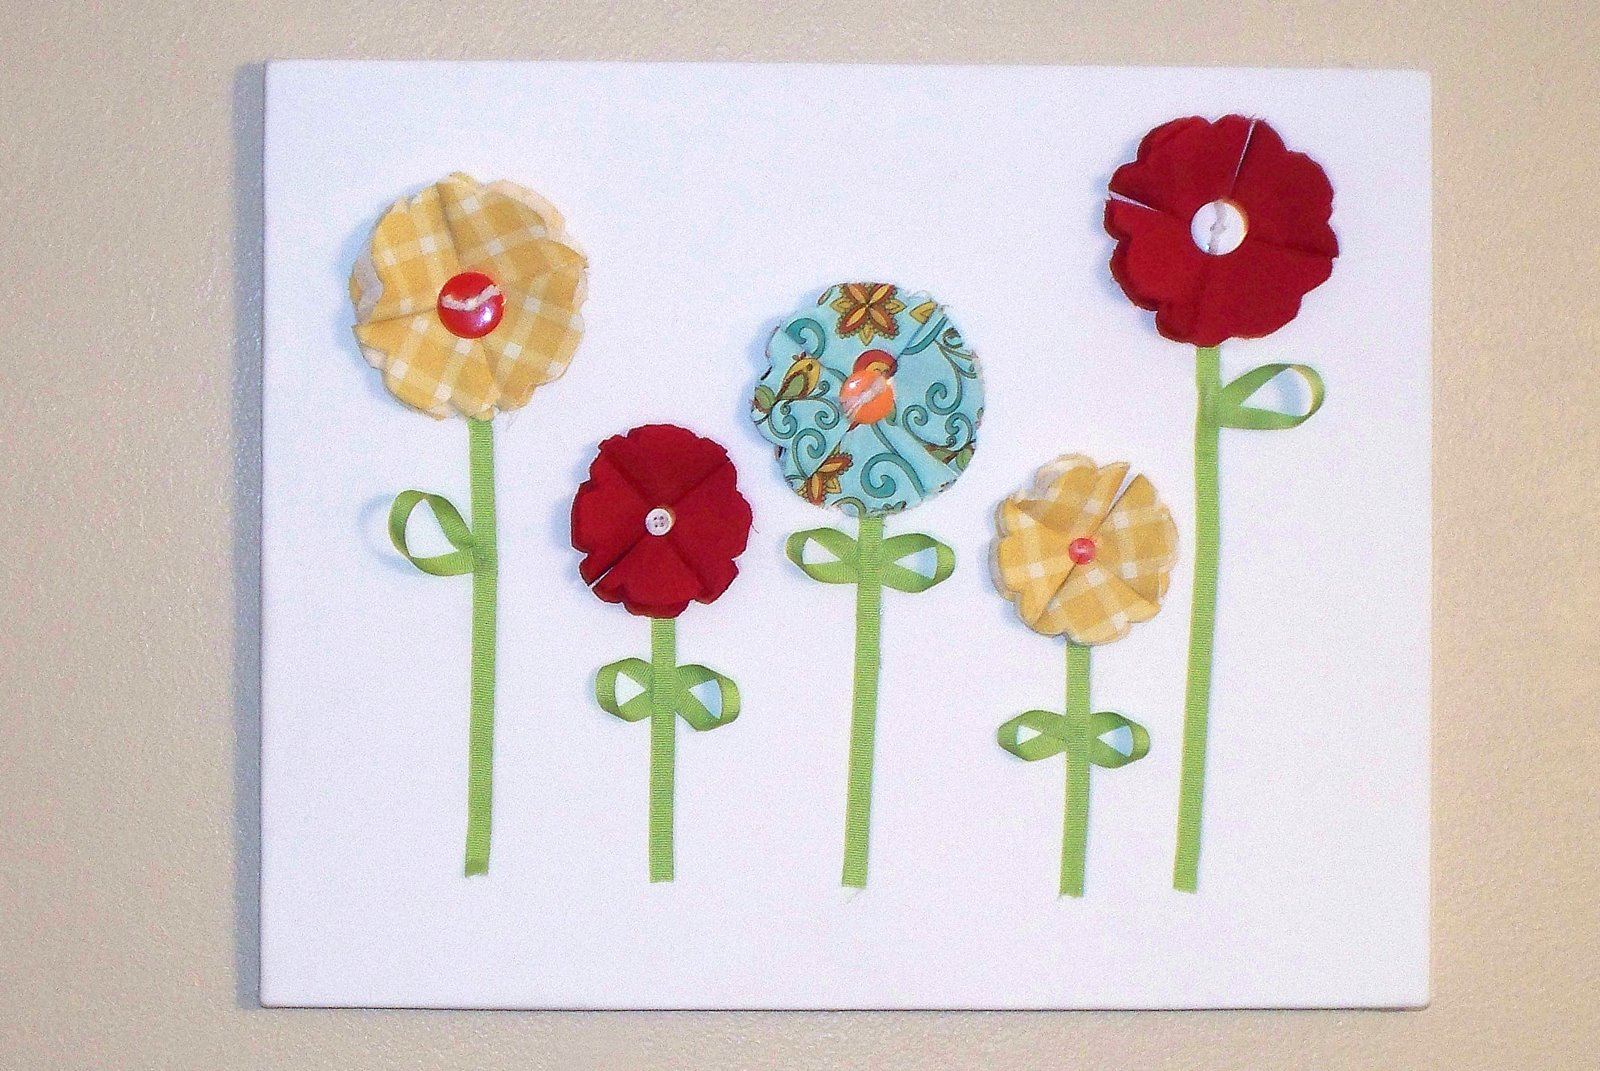 Chicy Creations: 3D Fabric Flower Wall Art